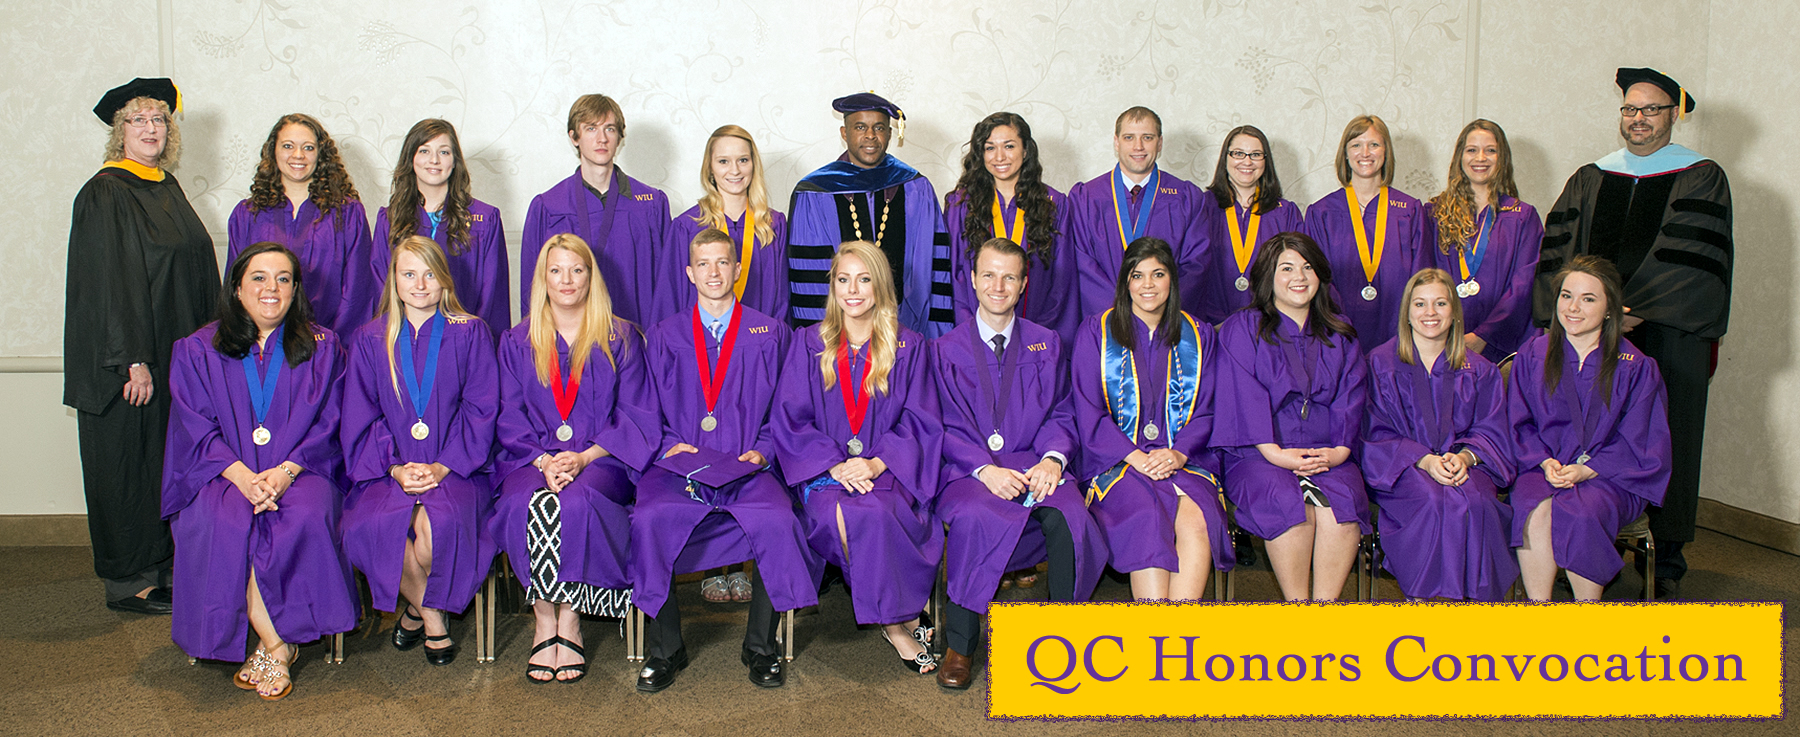 QC Honors Convocation